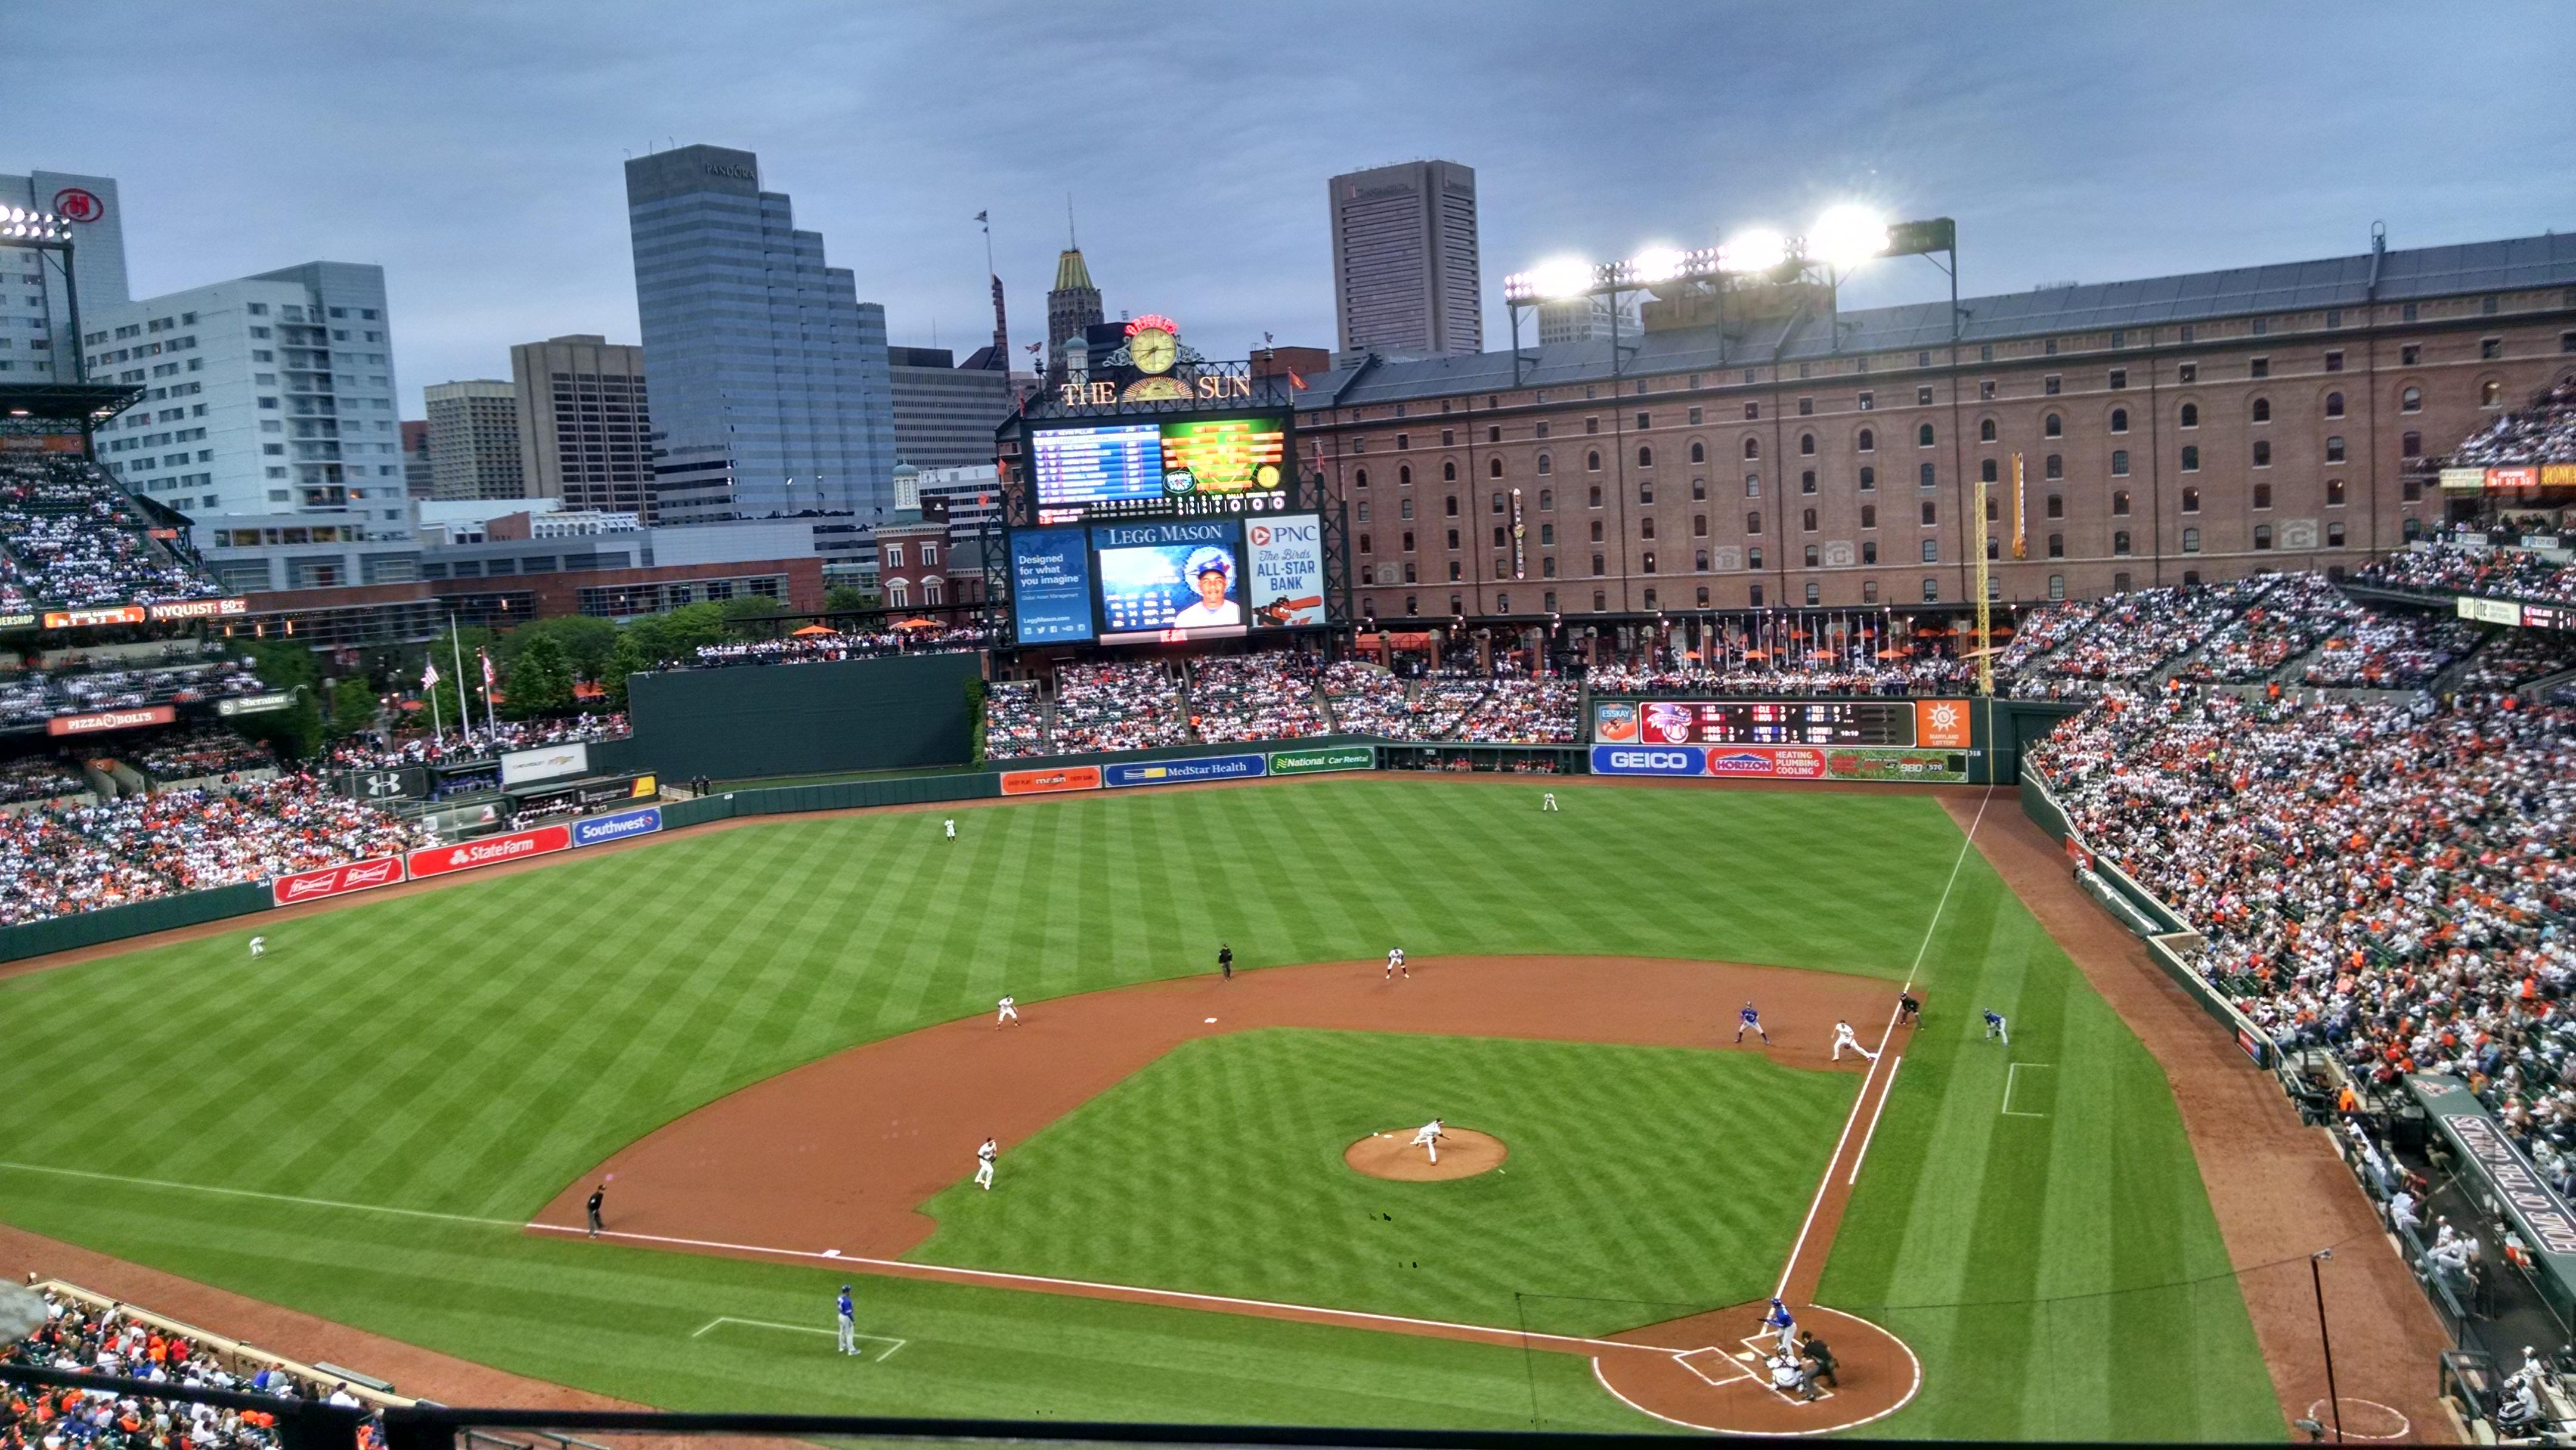 oriole park at camden yards Section 344 Row 2 Seat 9